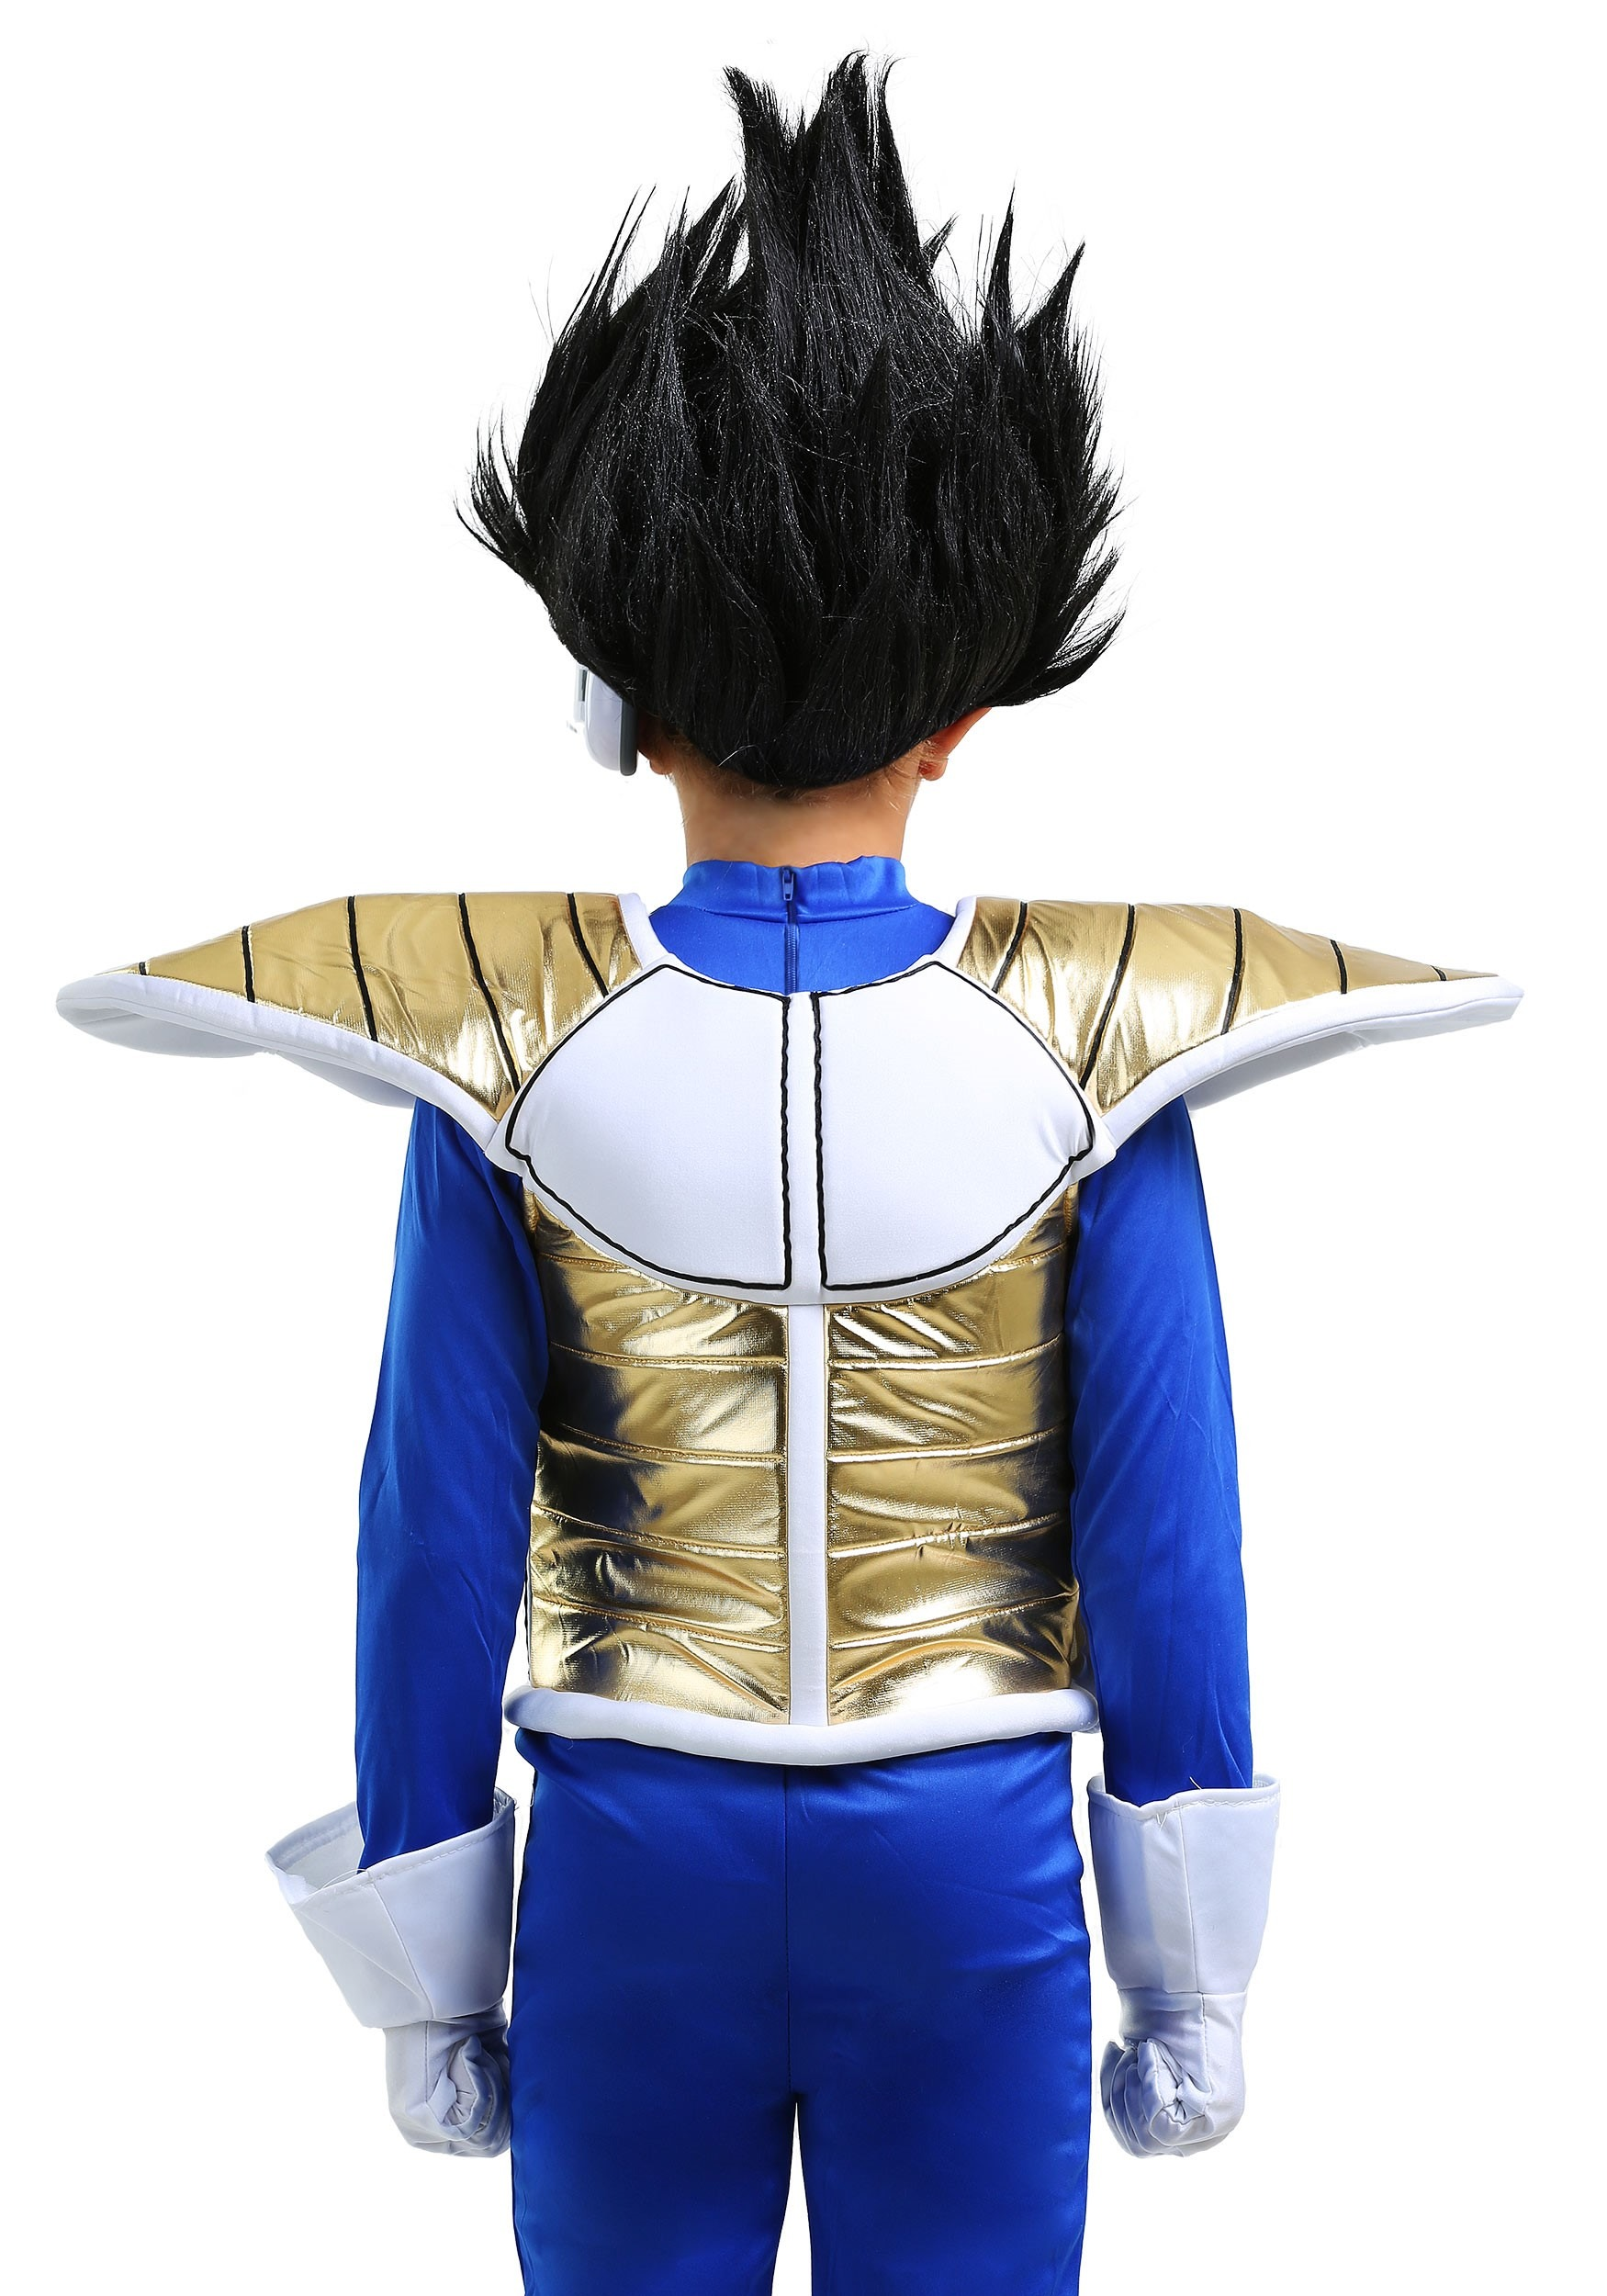 Dragon Ball Z Saiyan Armor Accessory For Kids Increase your power level with this classic look. child dragon ball z saiyan armor accessory